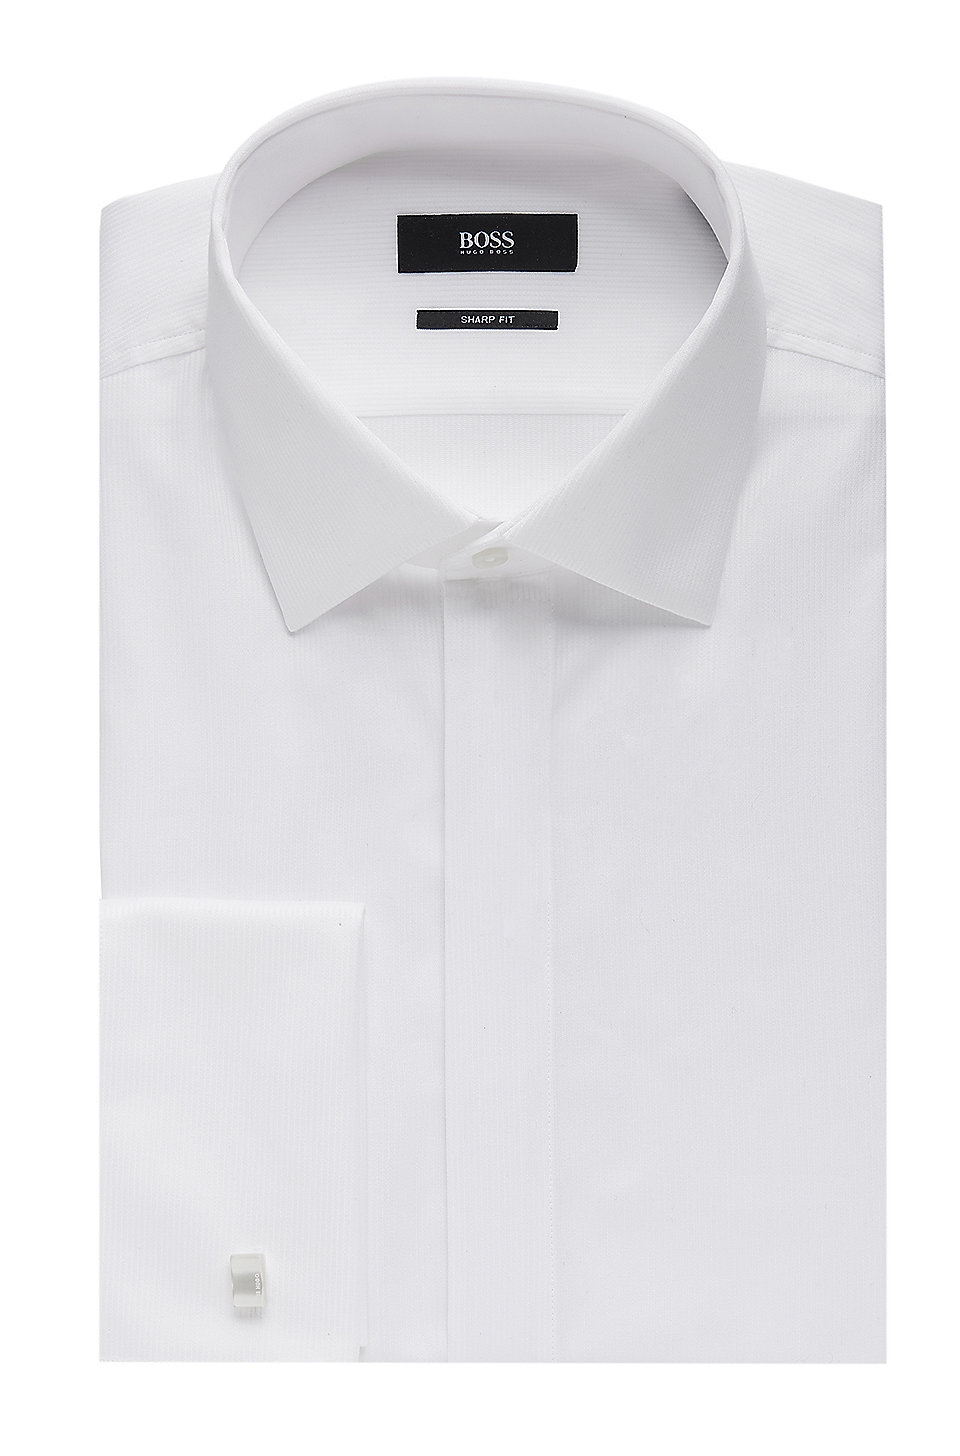 Cufflink shirt - features, rules and recommendations 79